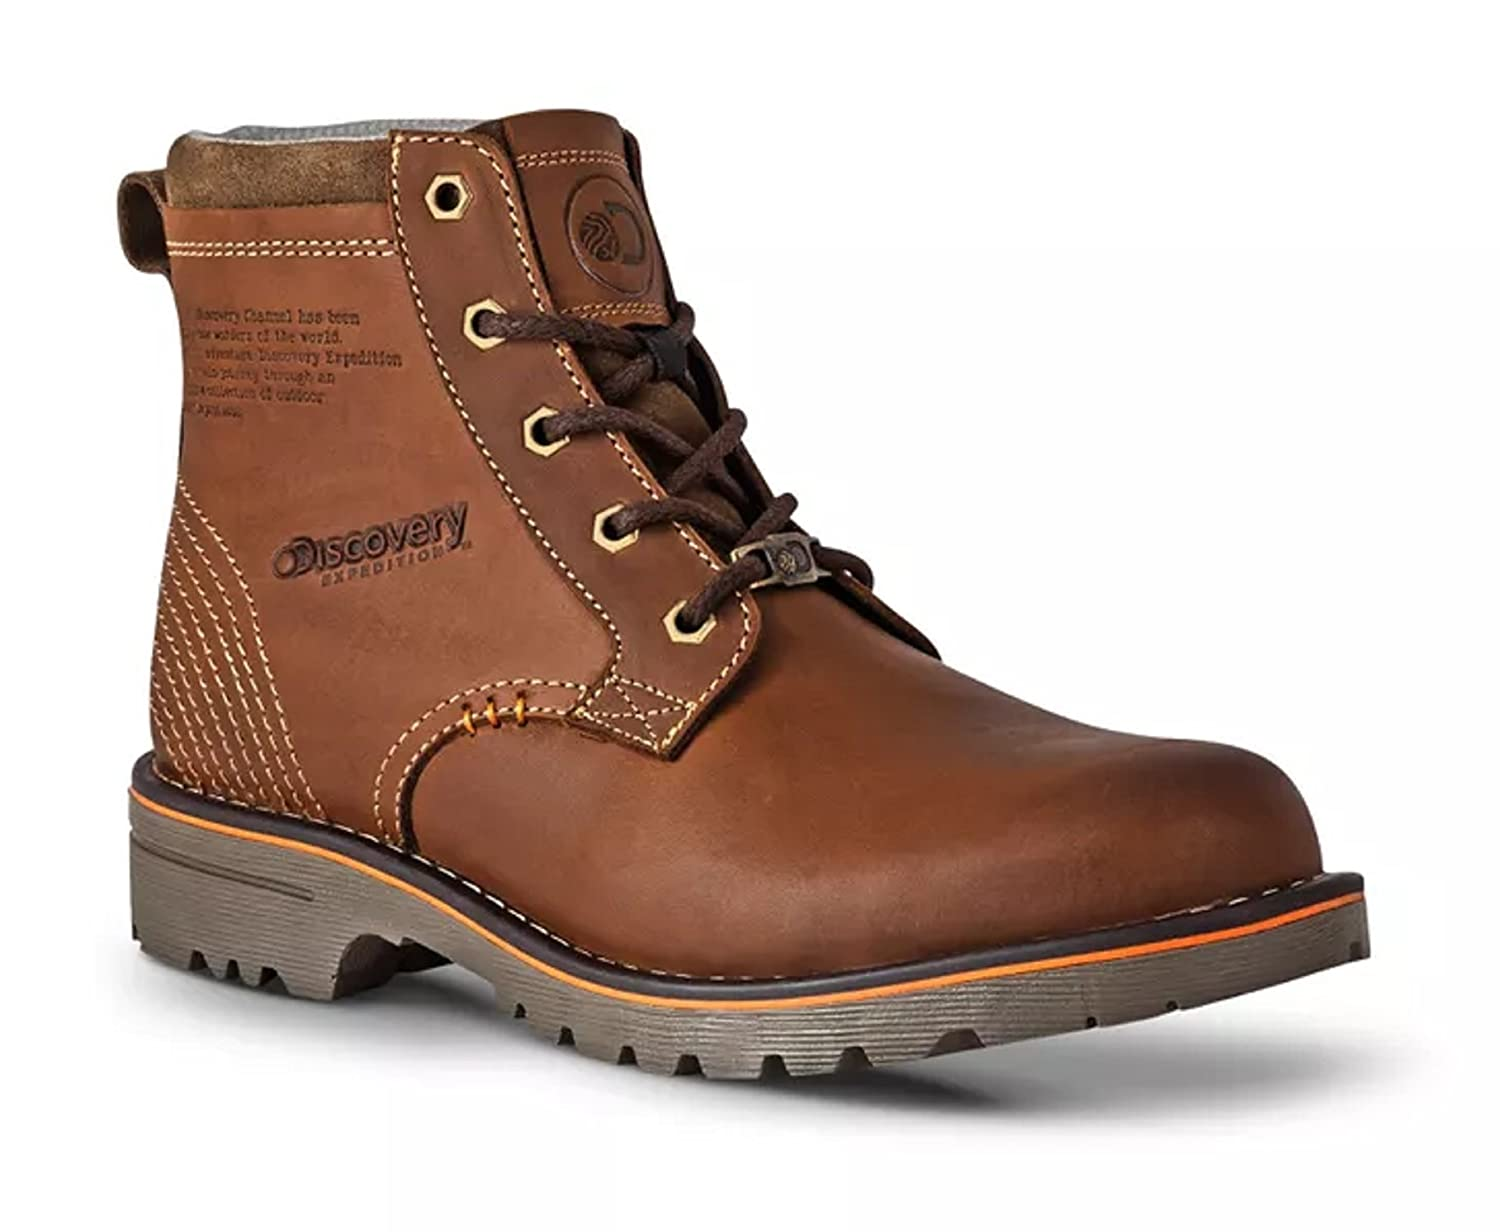 89d1eb661a3 Discovery Expedition Men s Leather Lace-Up Cushioned Casual Outdoors Boot  best